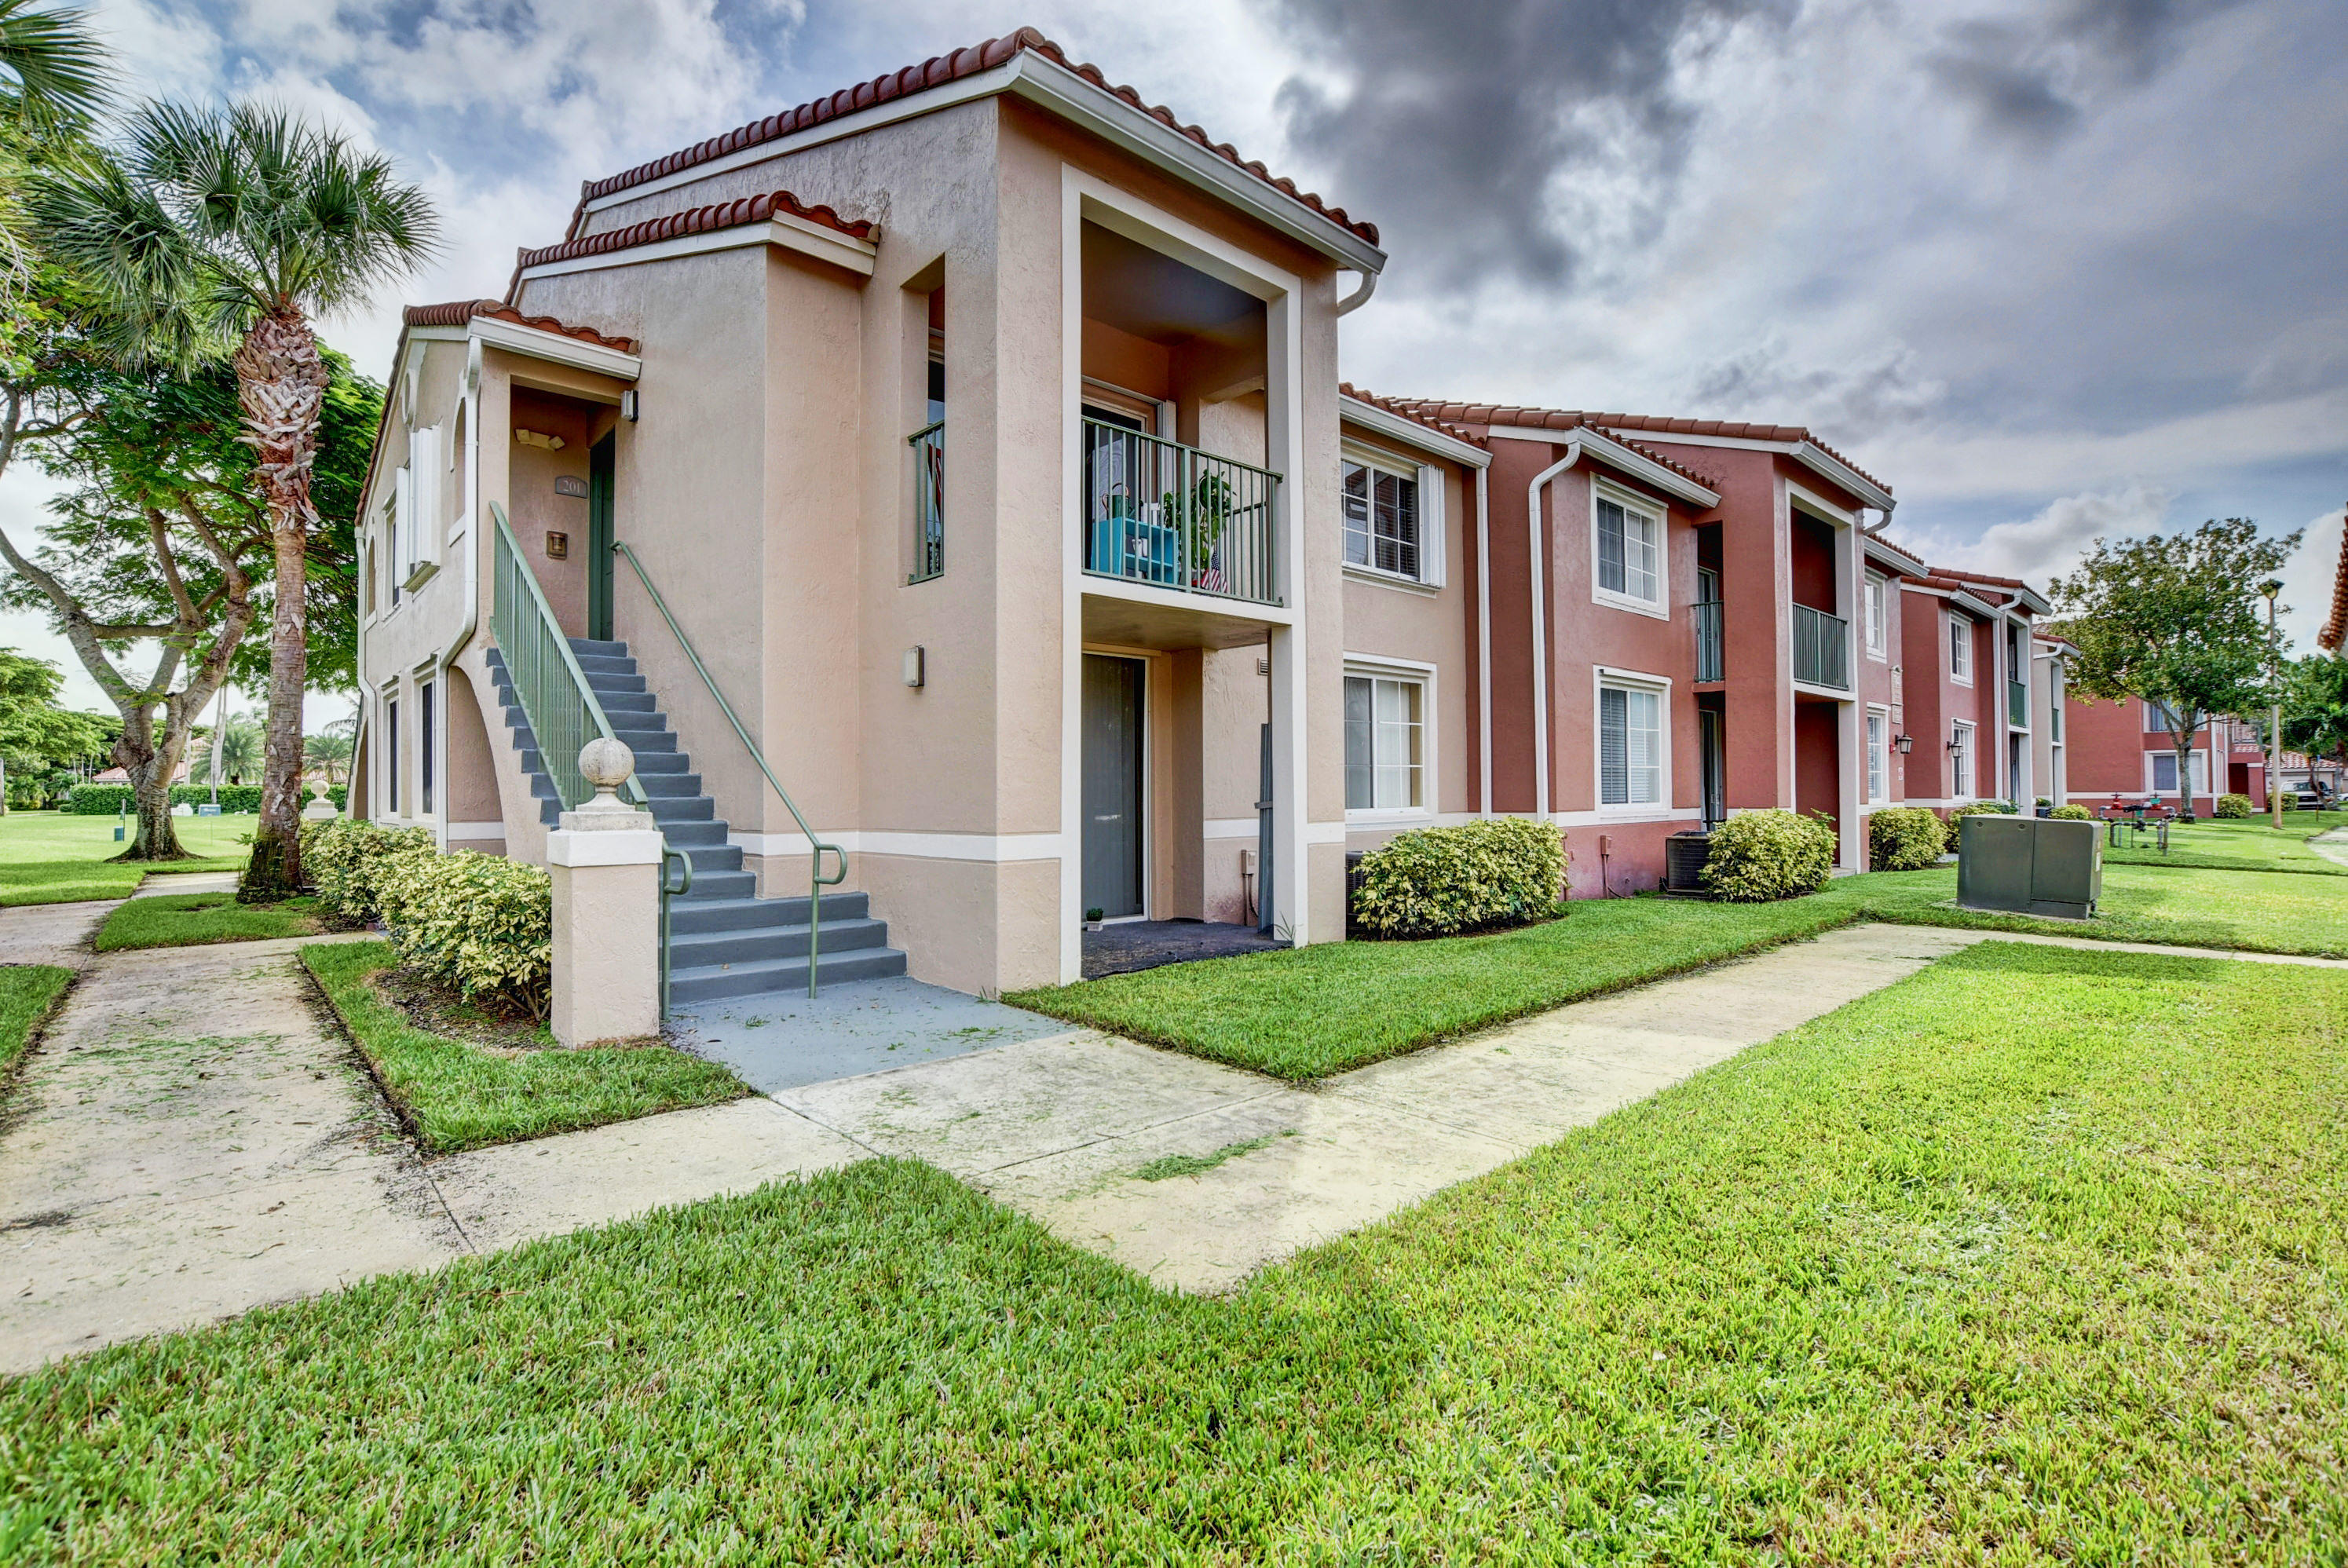 Great value for a 1/1 2nd floor corner unit in beautiful St. Andrews at Boynton Beach.  Move-in ready. New A/C.  Garage available for $100 per month and there is one assigned parking spot and plenty of guest parking. Maintenance Fee includes basic cable, water, roof maintenance, landscaping and trash removal. For investors: Can rent immediately!